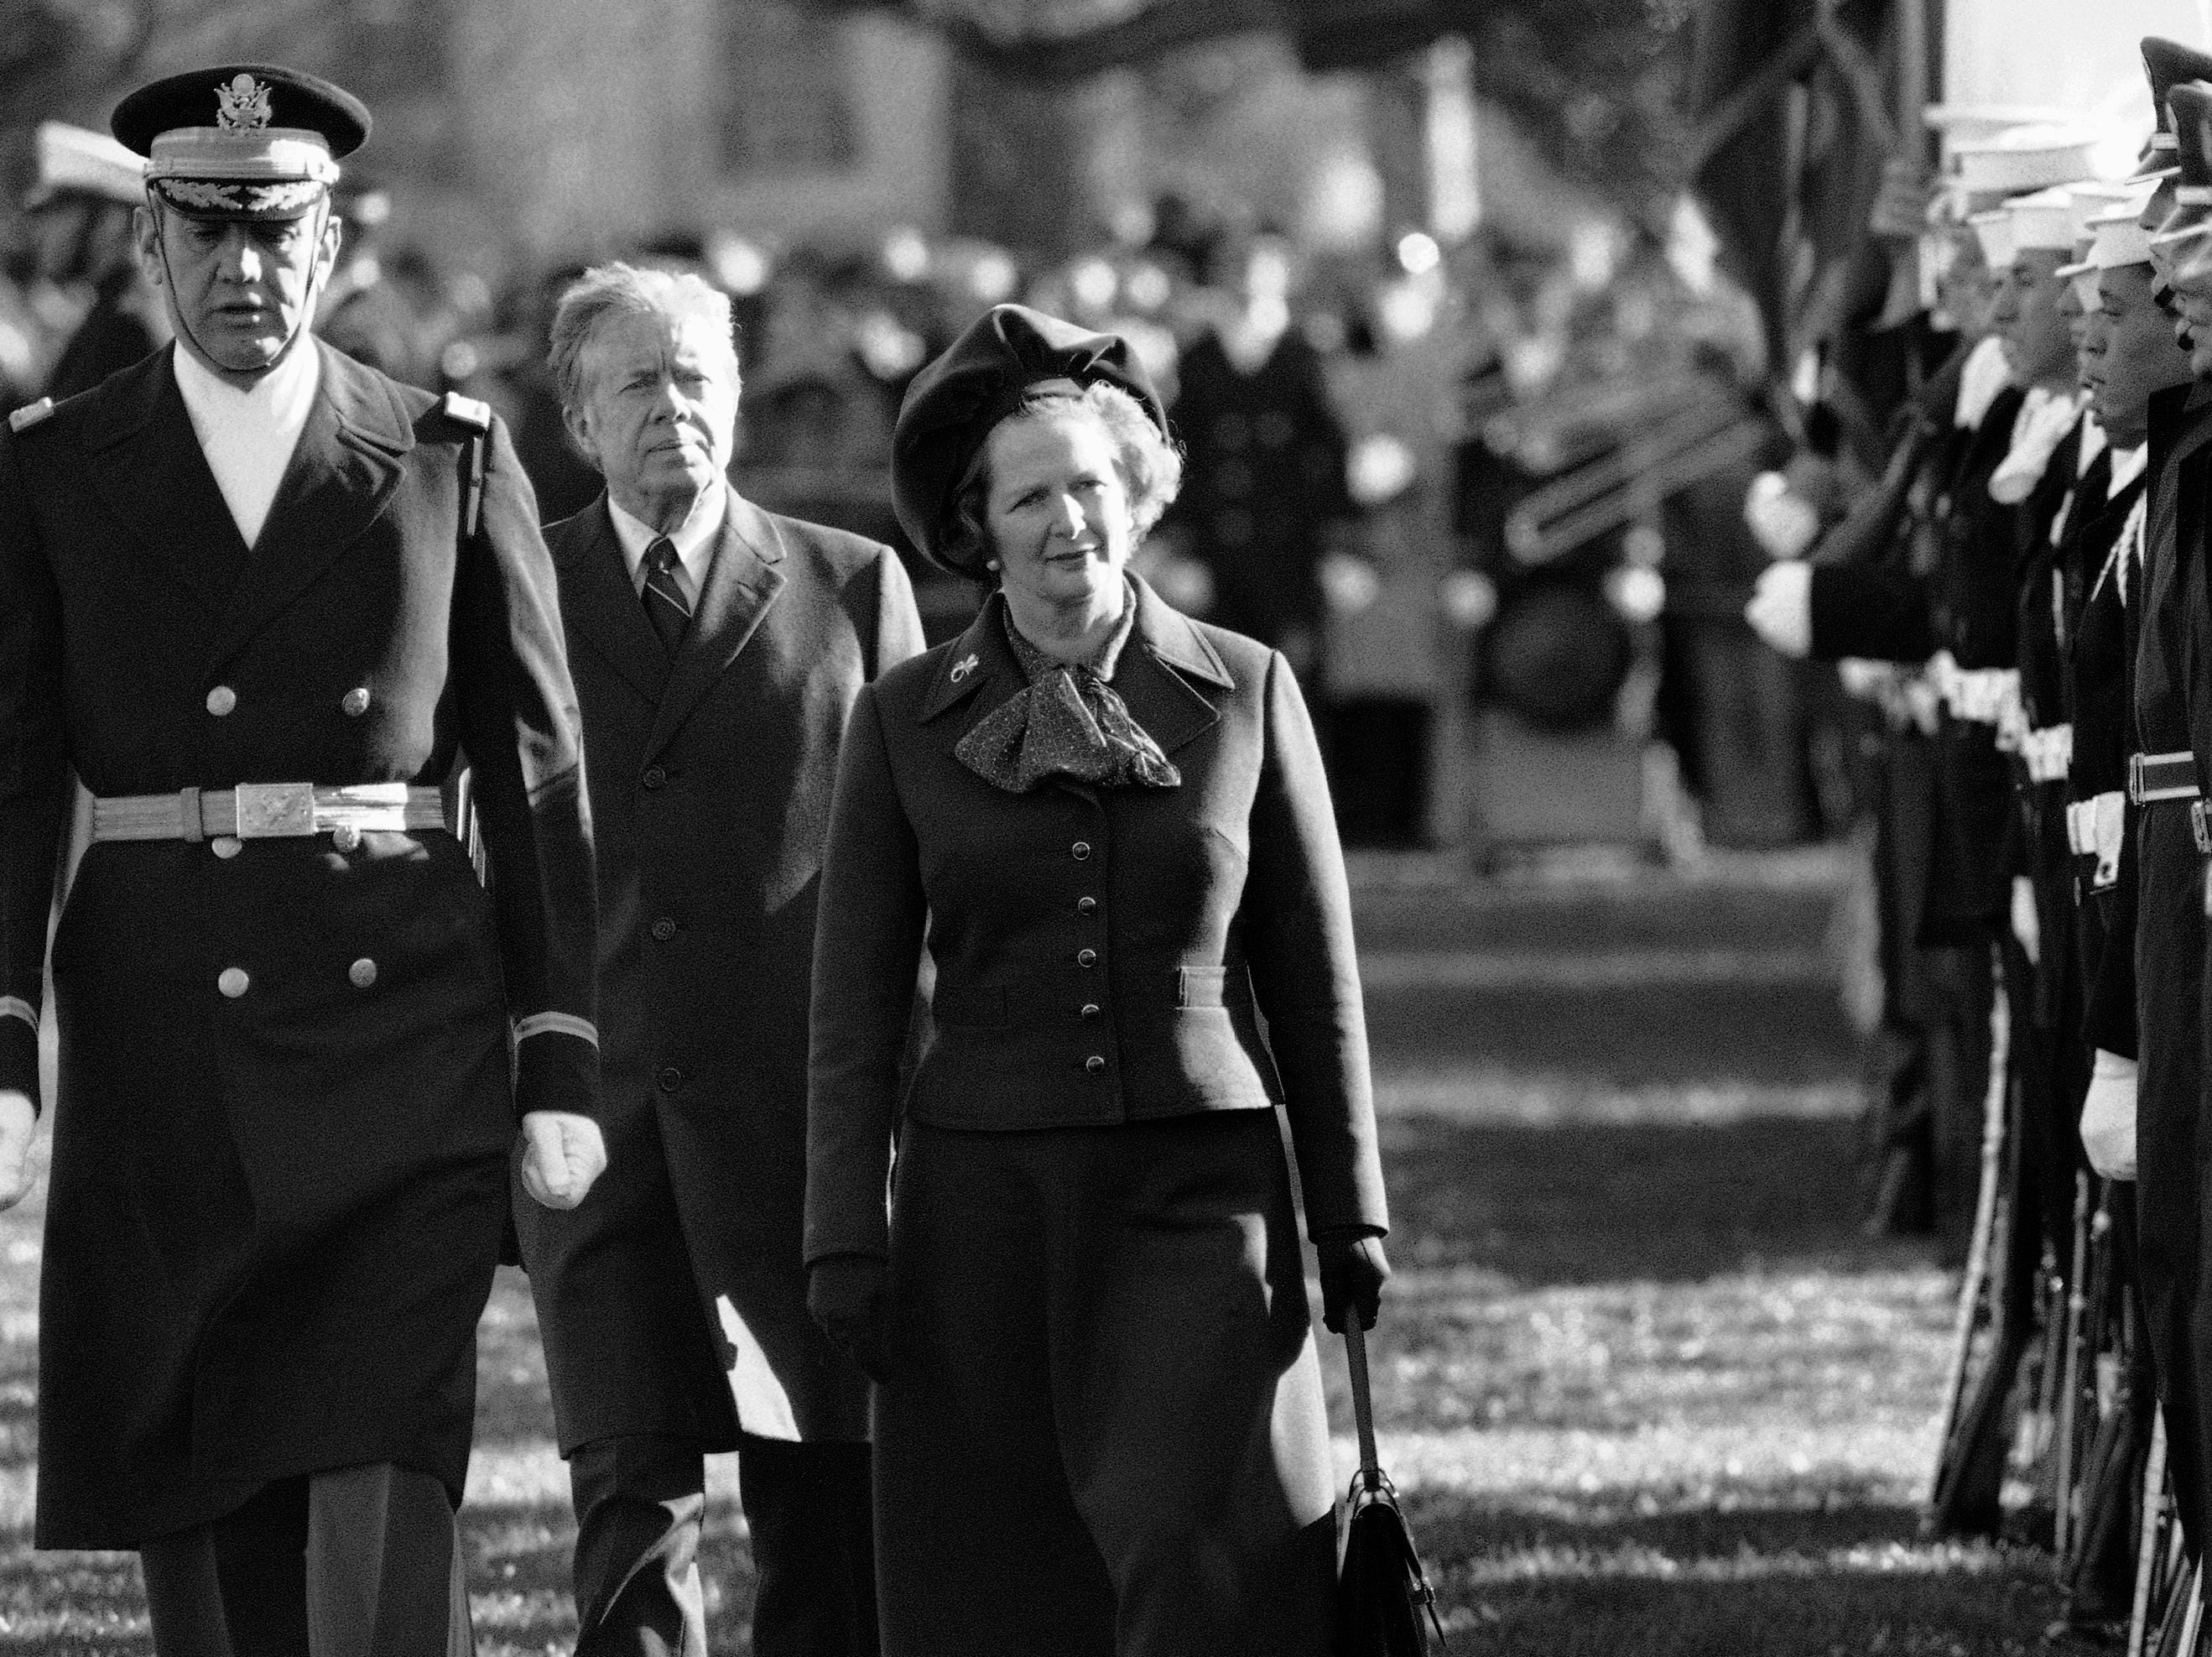 British Prime Minister Margaret Thatcher  reviews the honor guard at the White House in Washington, as President Carter follows on Dec. 17, 1979.